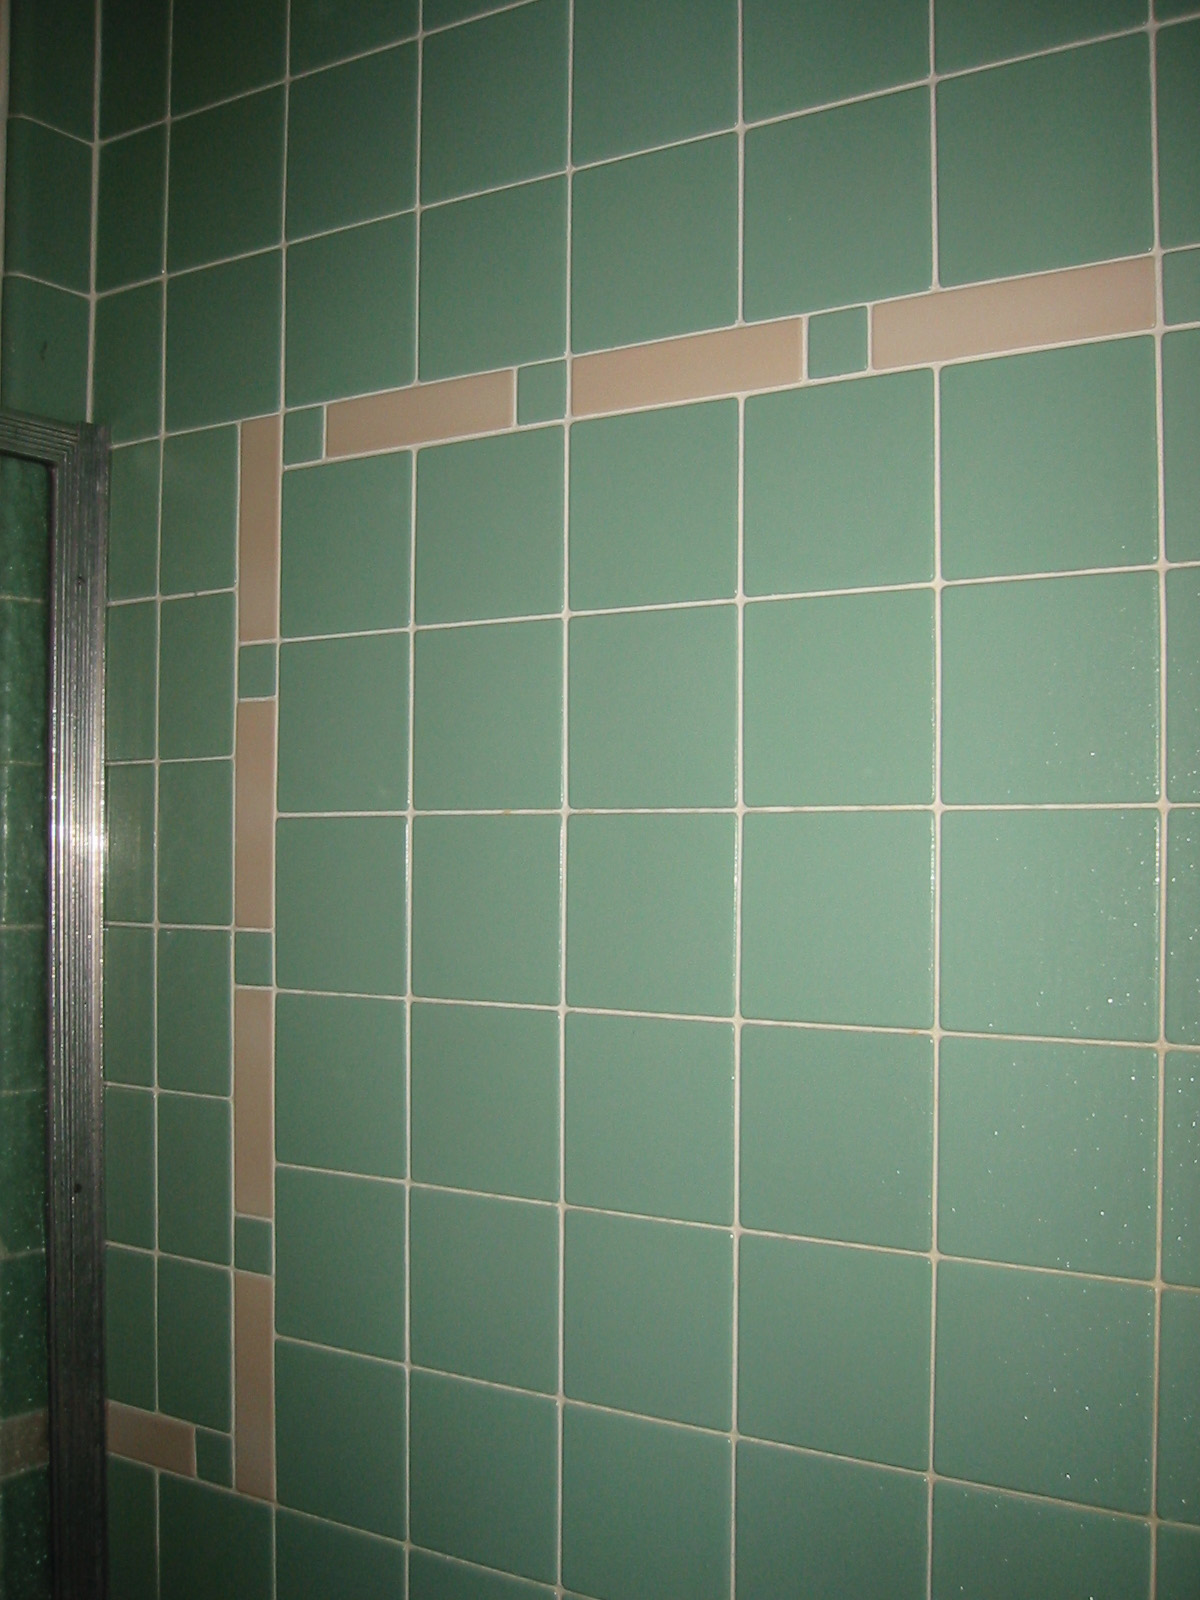 green-wall-tiles-1930s-bathroom-design-ideas